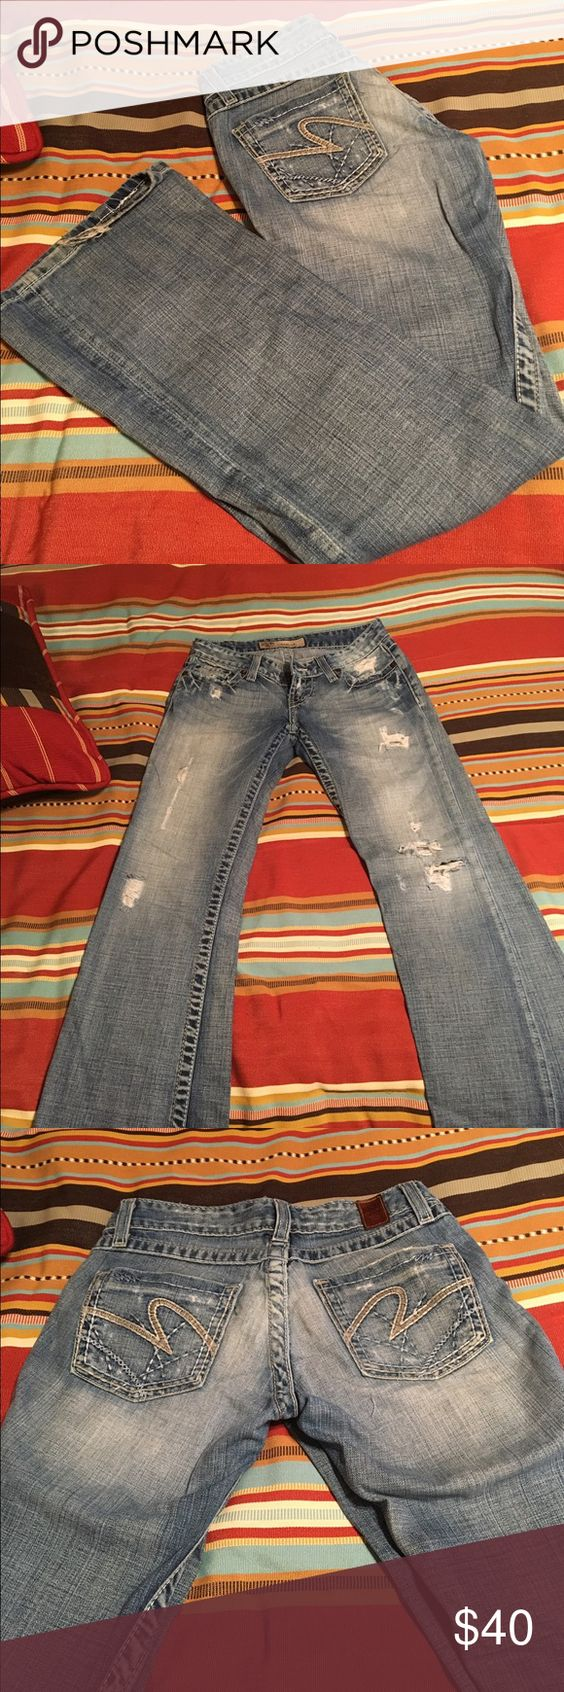 BKE Jeans Size 24, inseam 31 1/2, bootcut BKE Jeans. In good condition. BKE Jeans Boot Cut